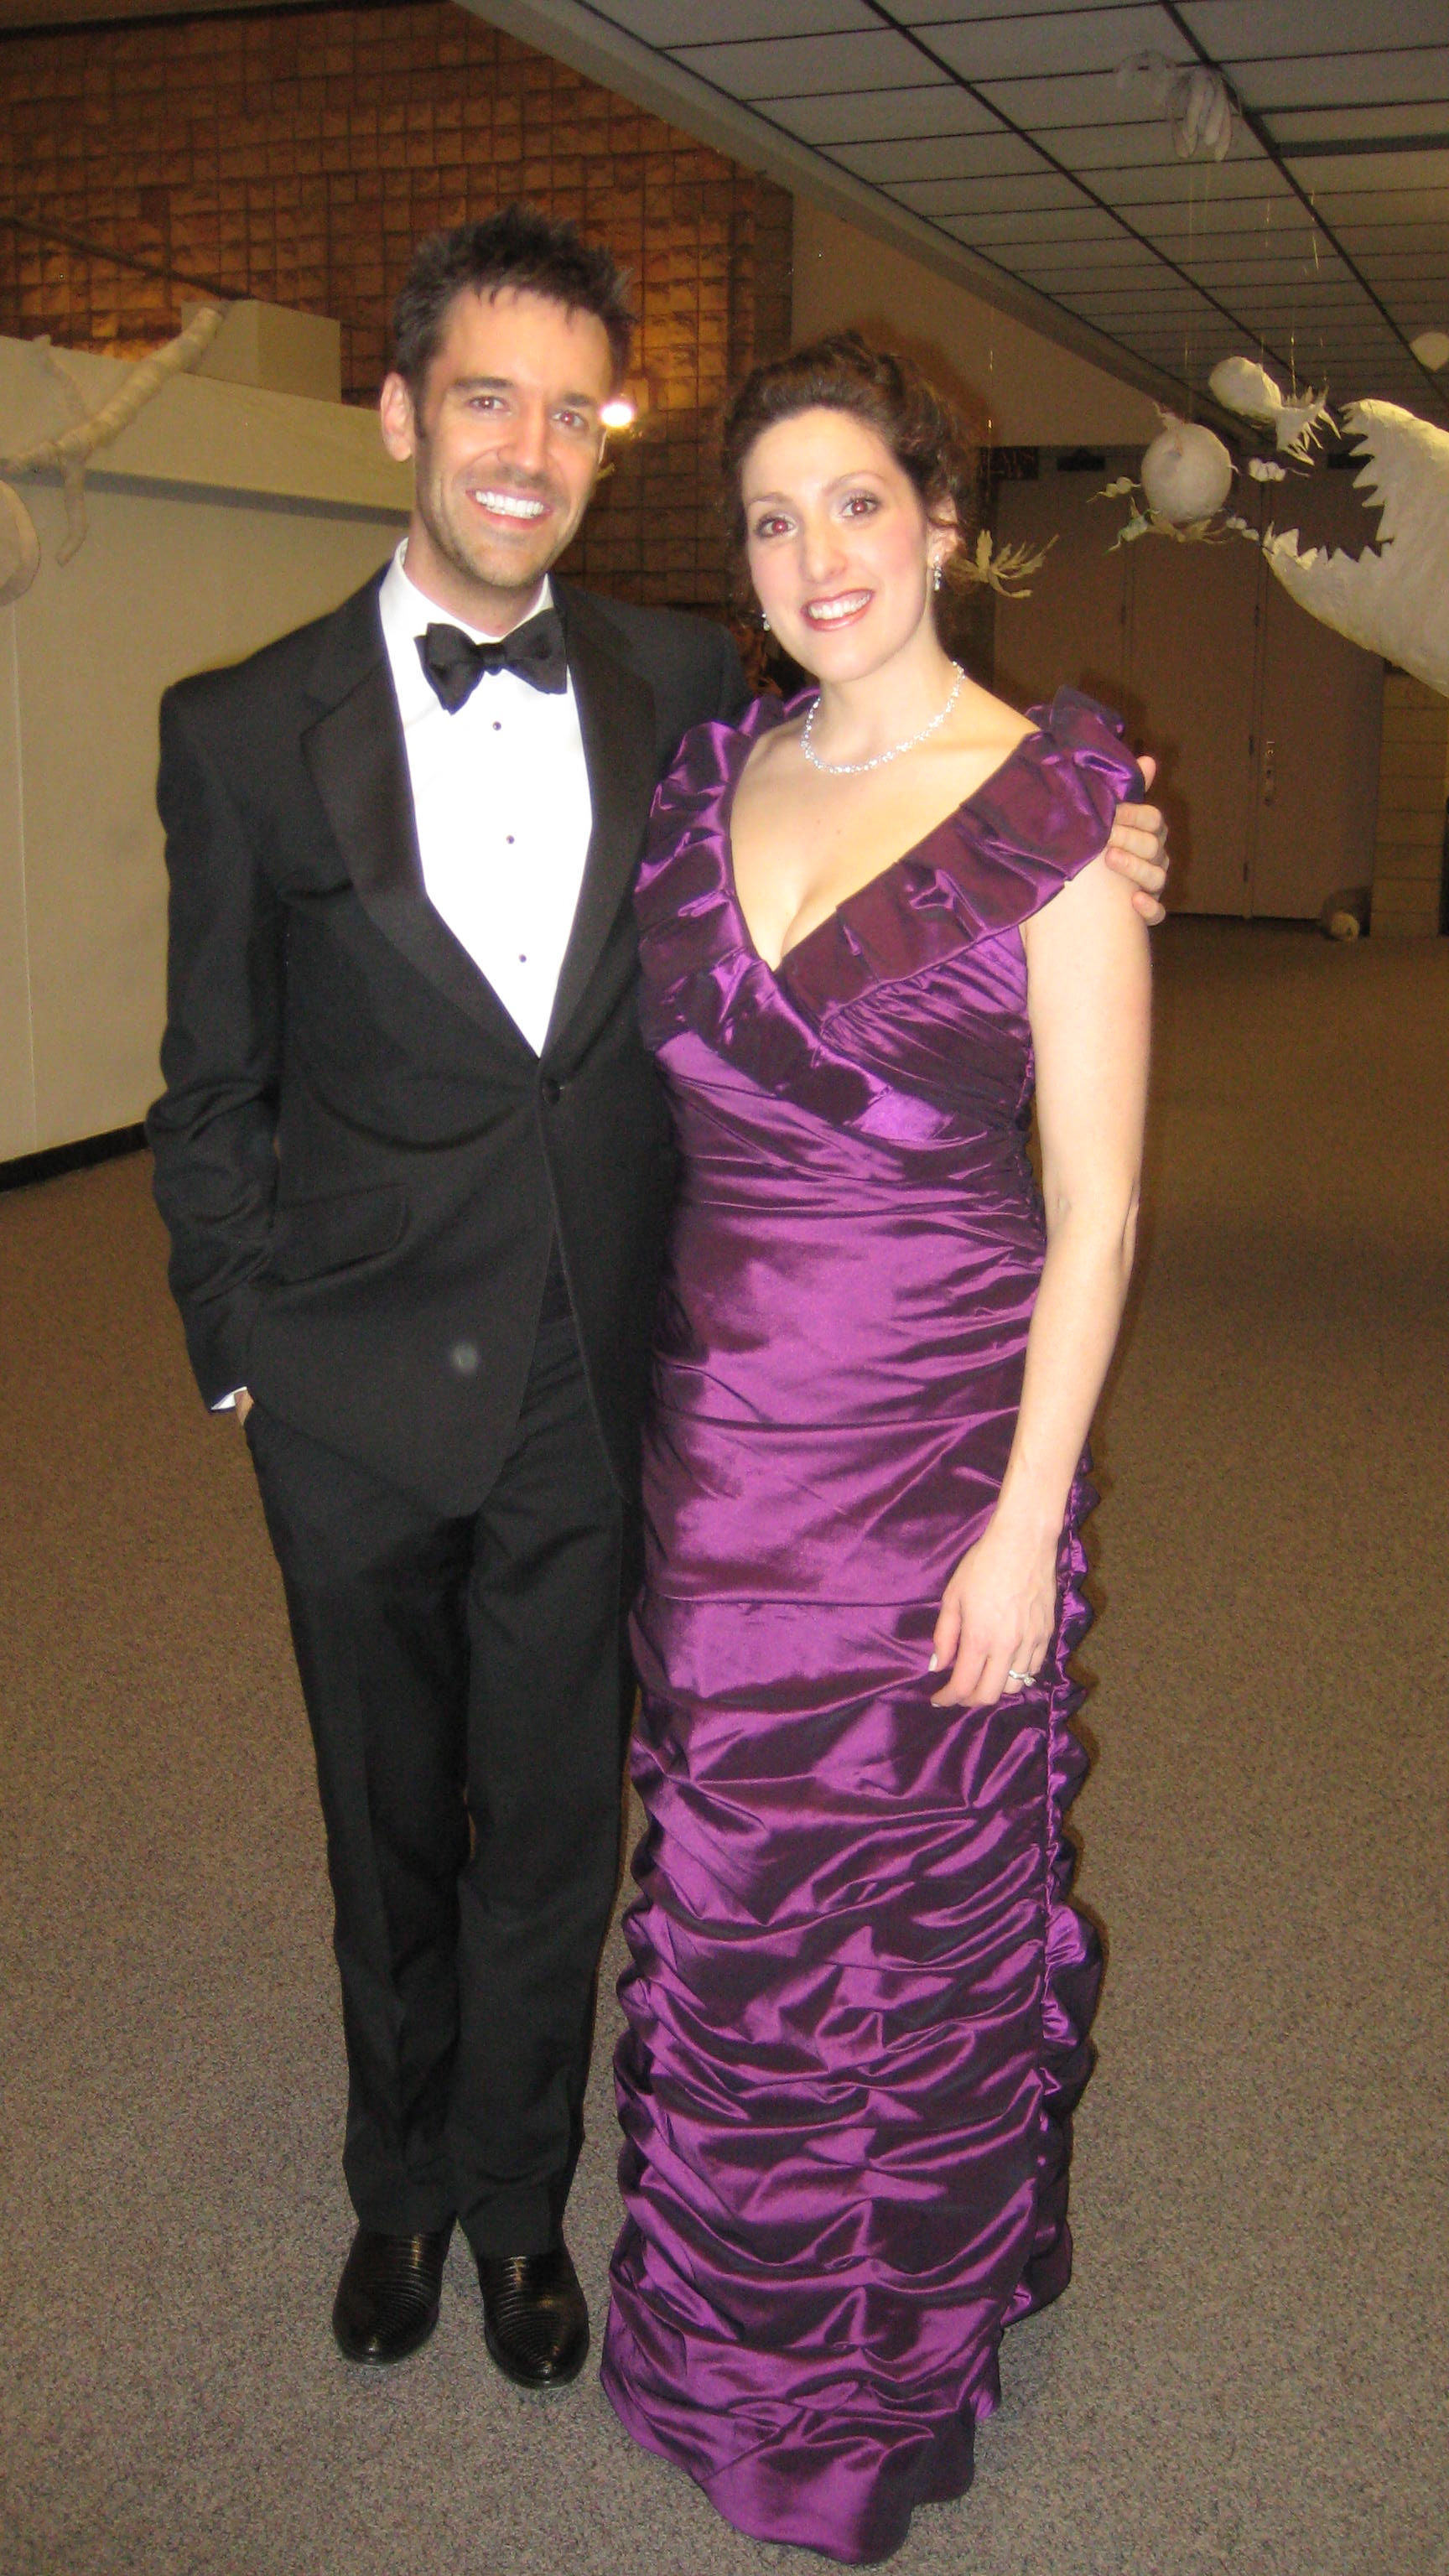 with pianist Cameron Stowe